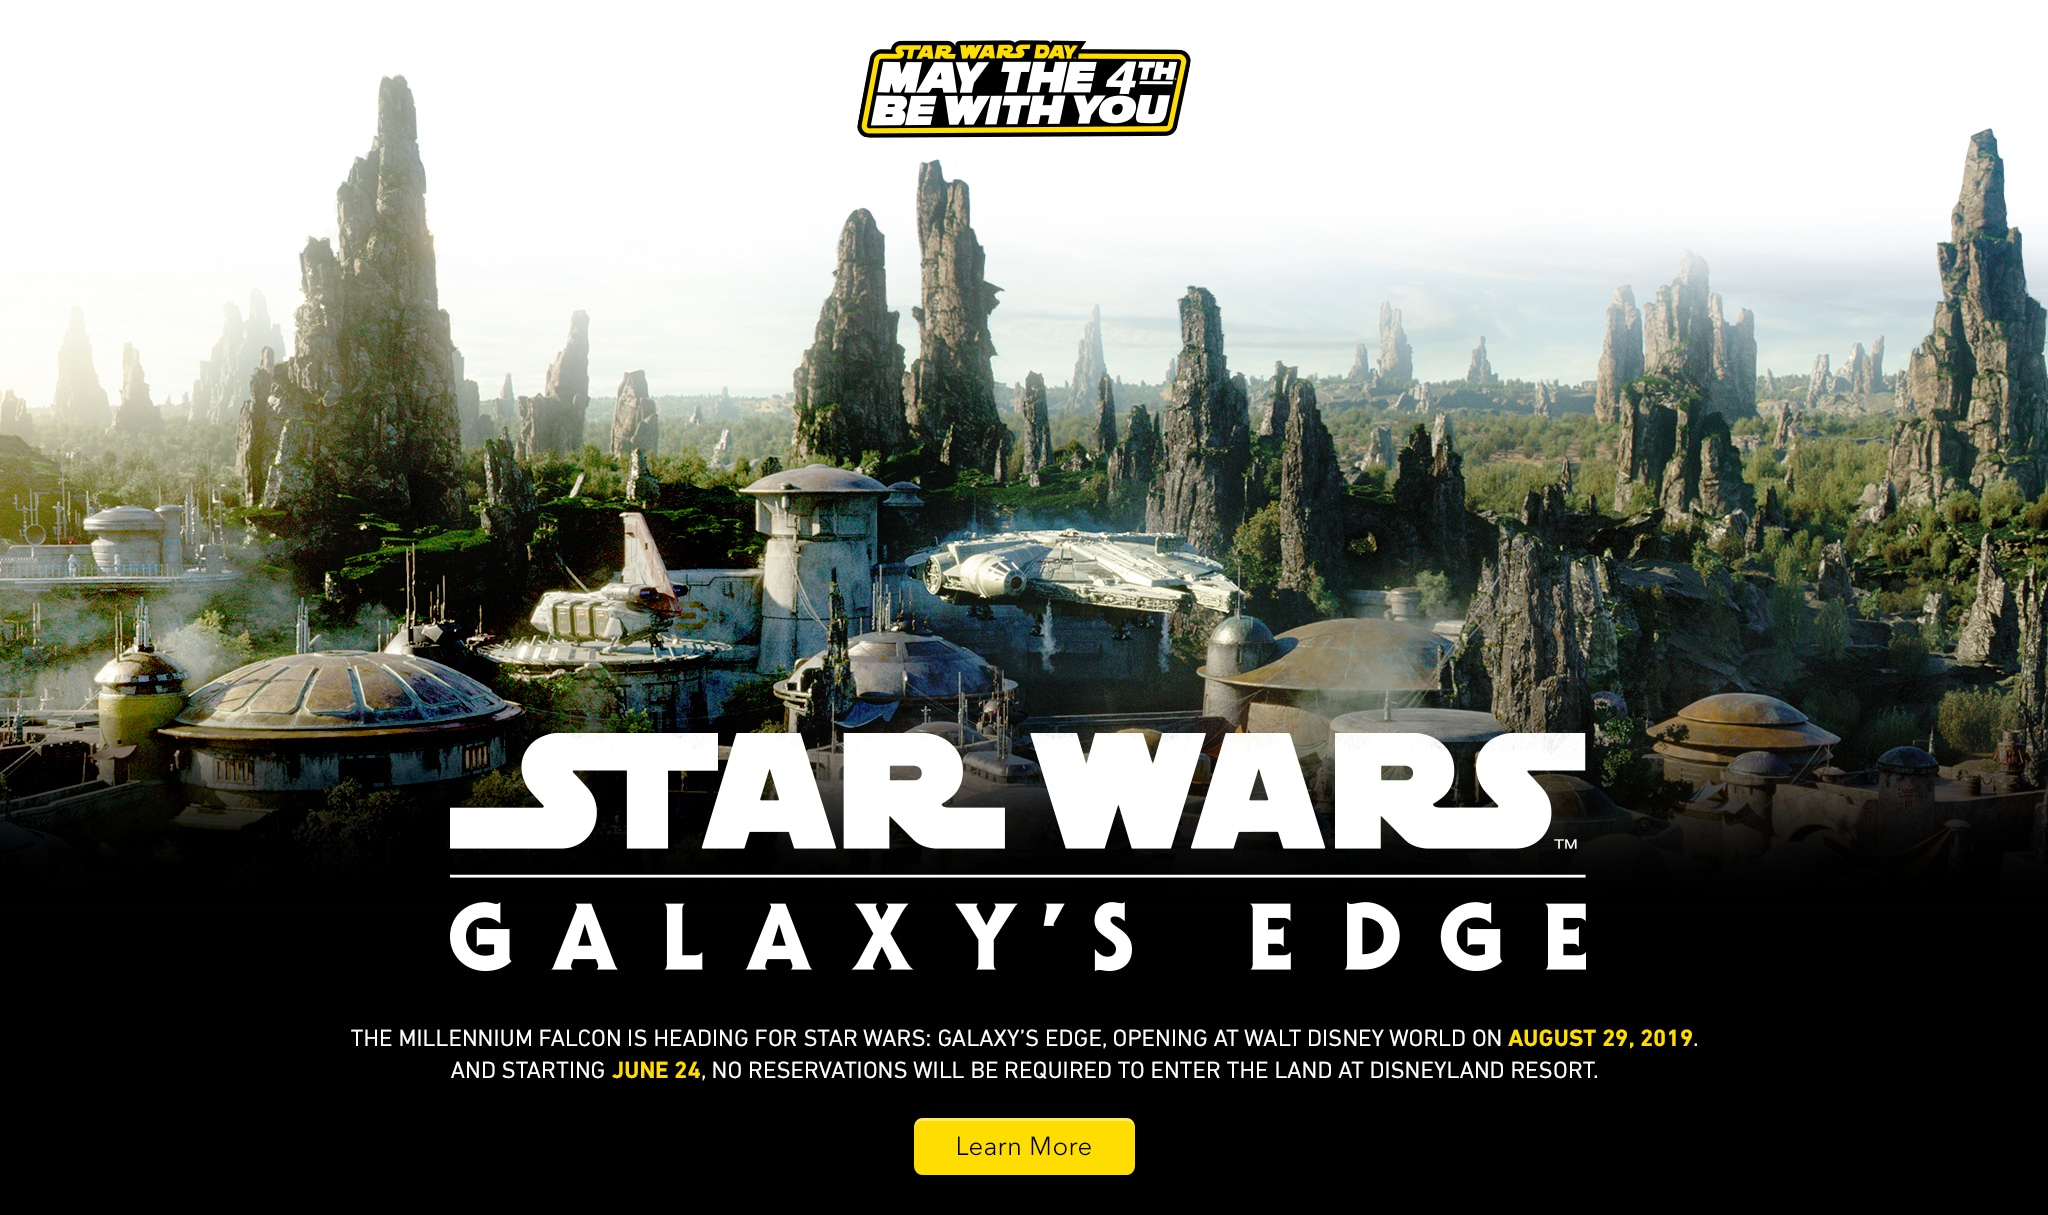 644168c9903 Star Wars Day May the 4th Be With You. Star Wars Galaxy s Edge. The